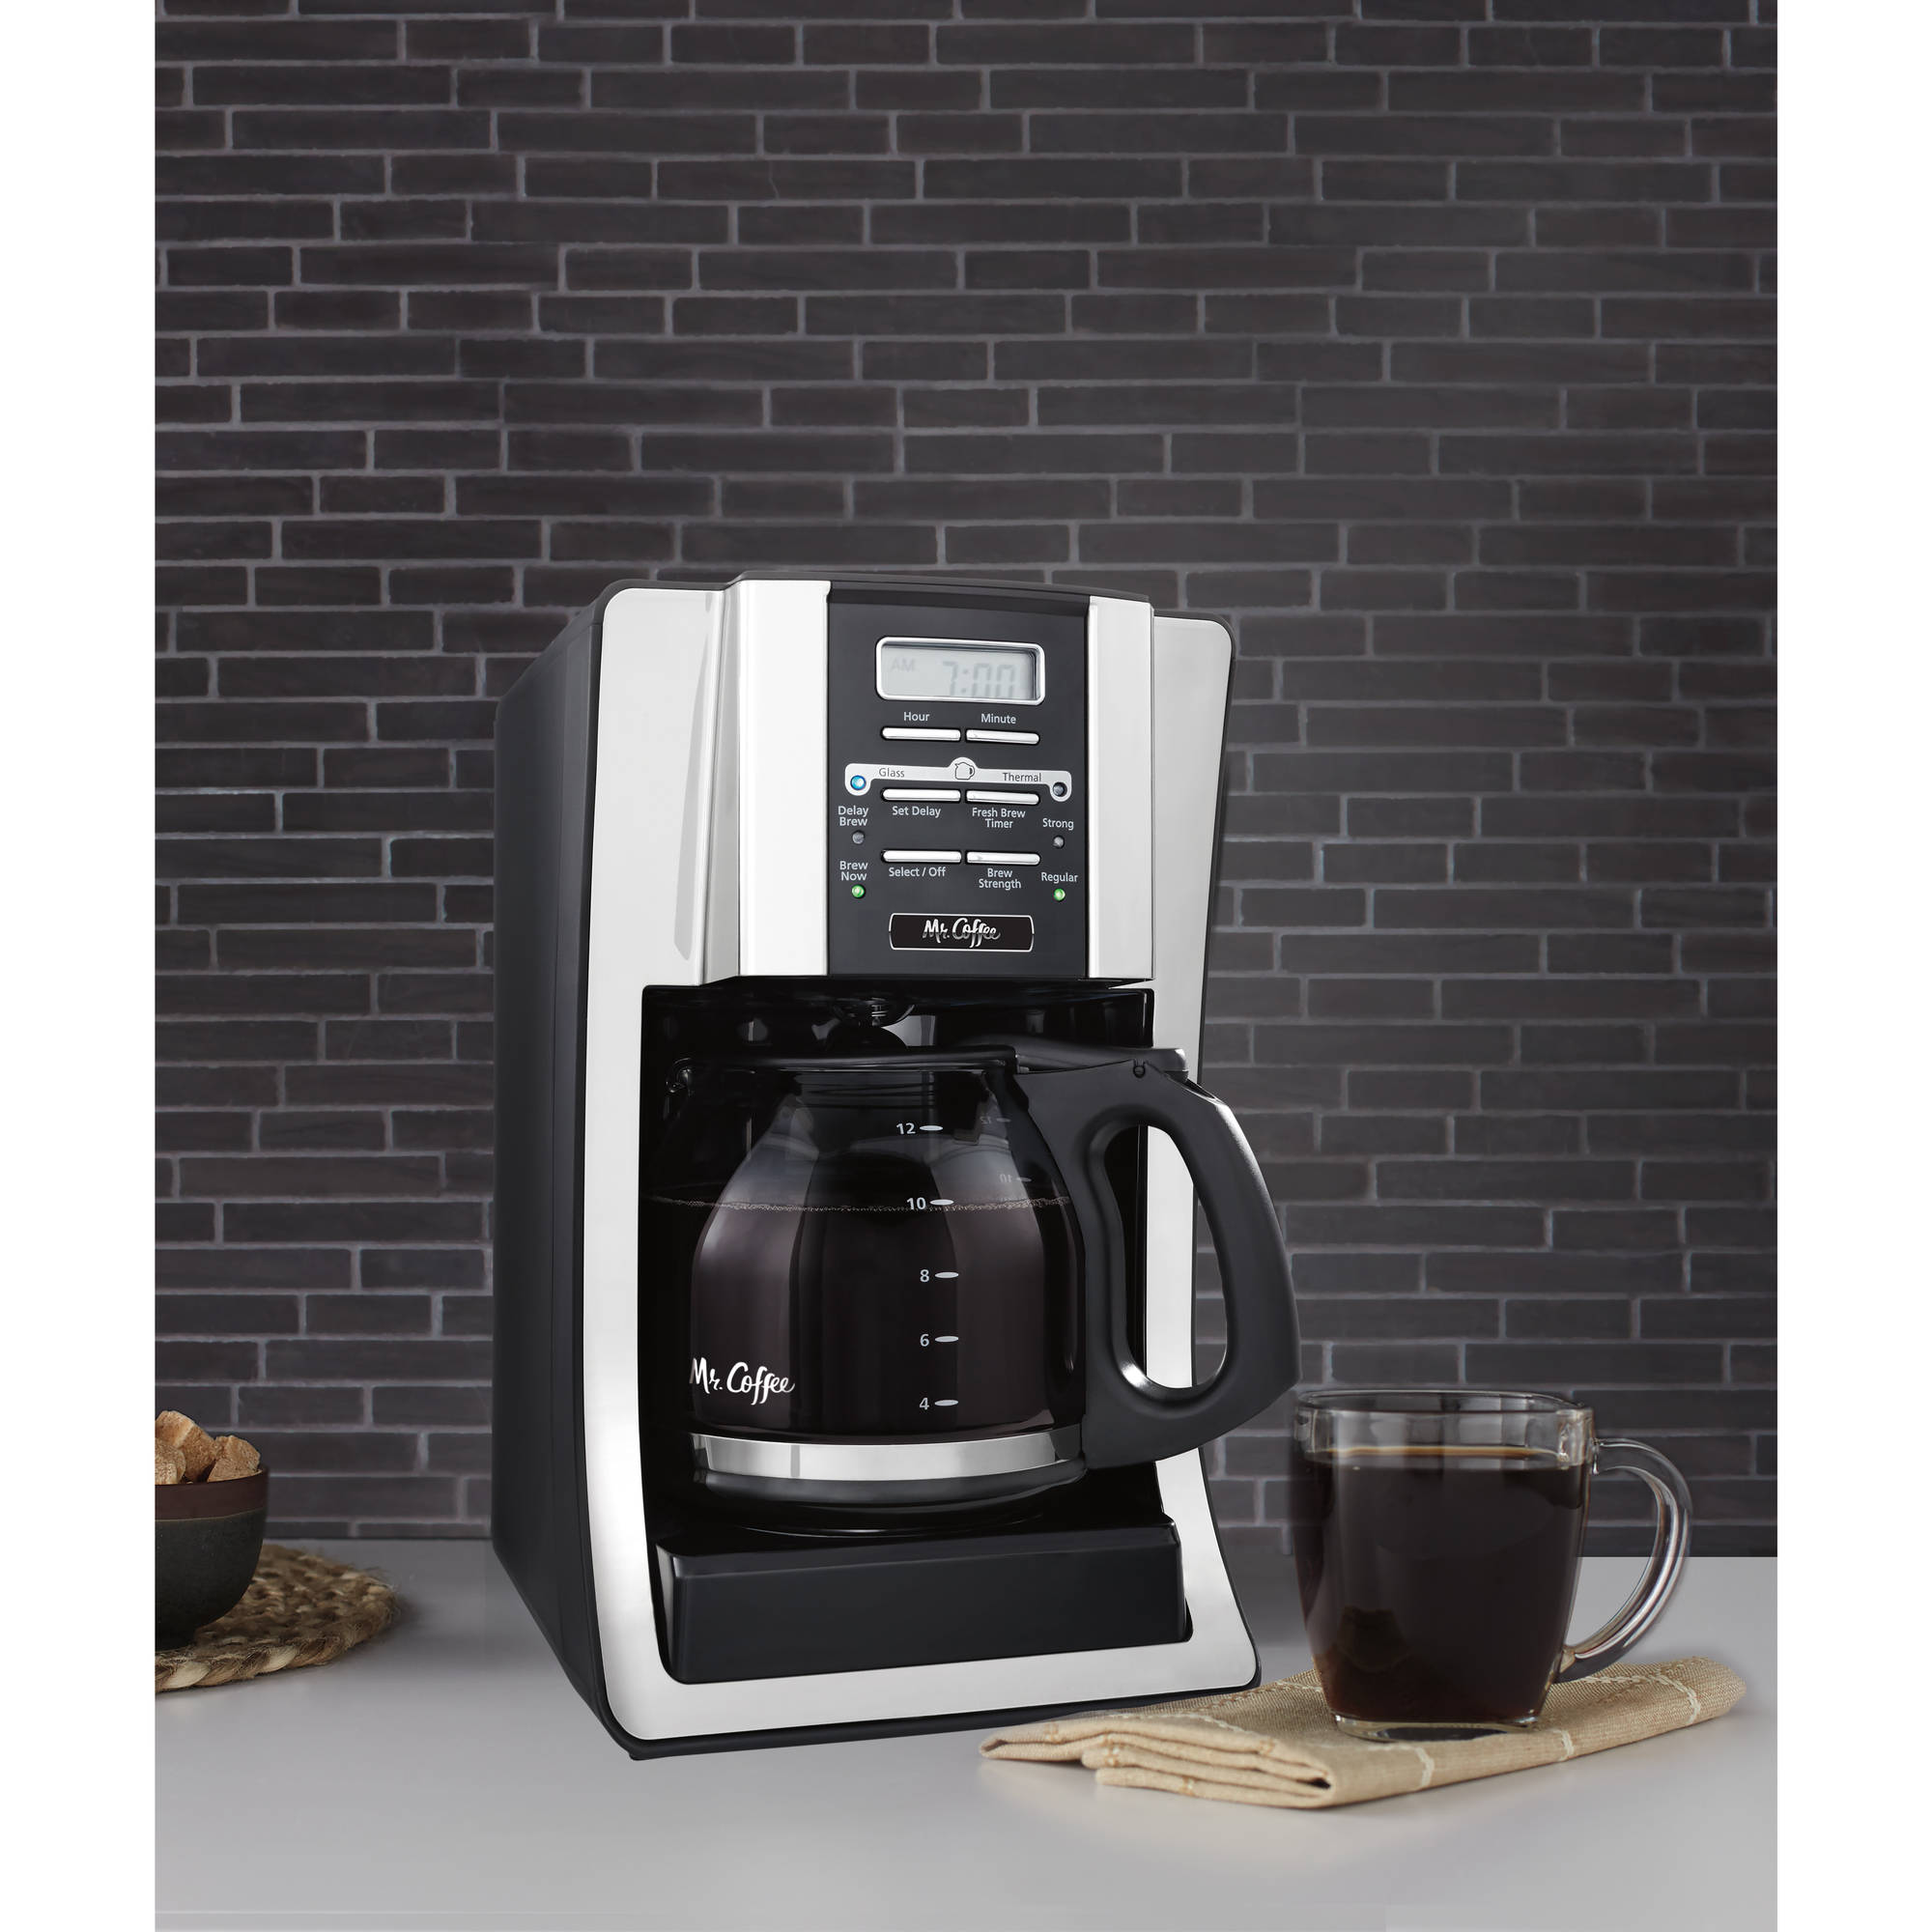 Mr Coffee Coffee Maker Bvmc Sjx36gt : Product Features: